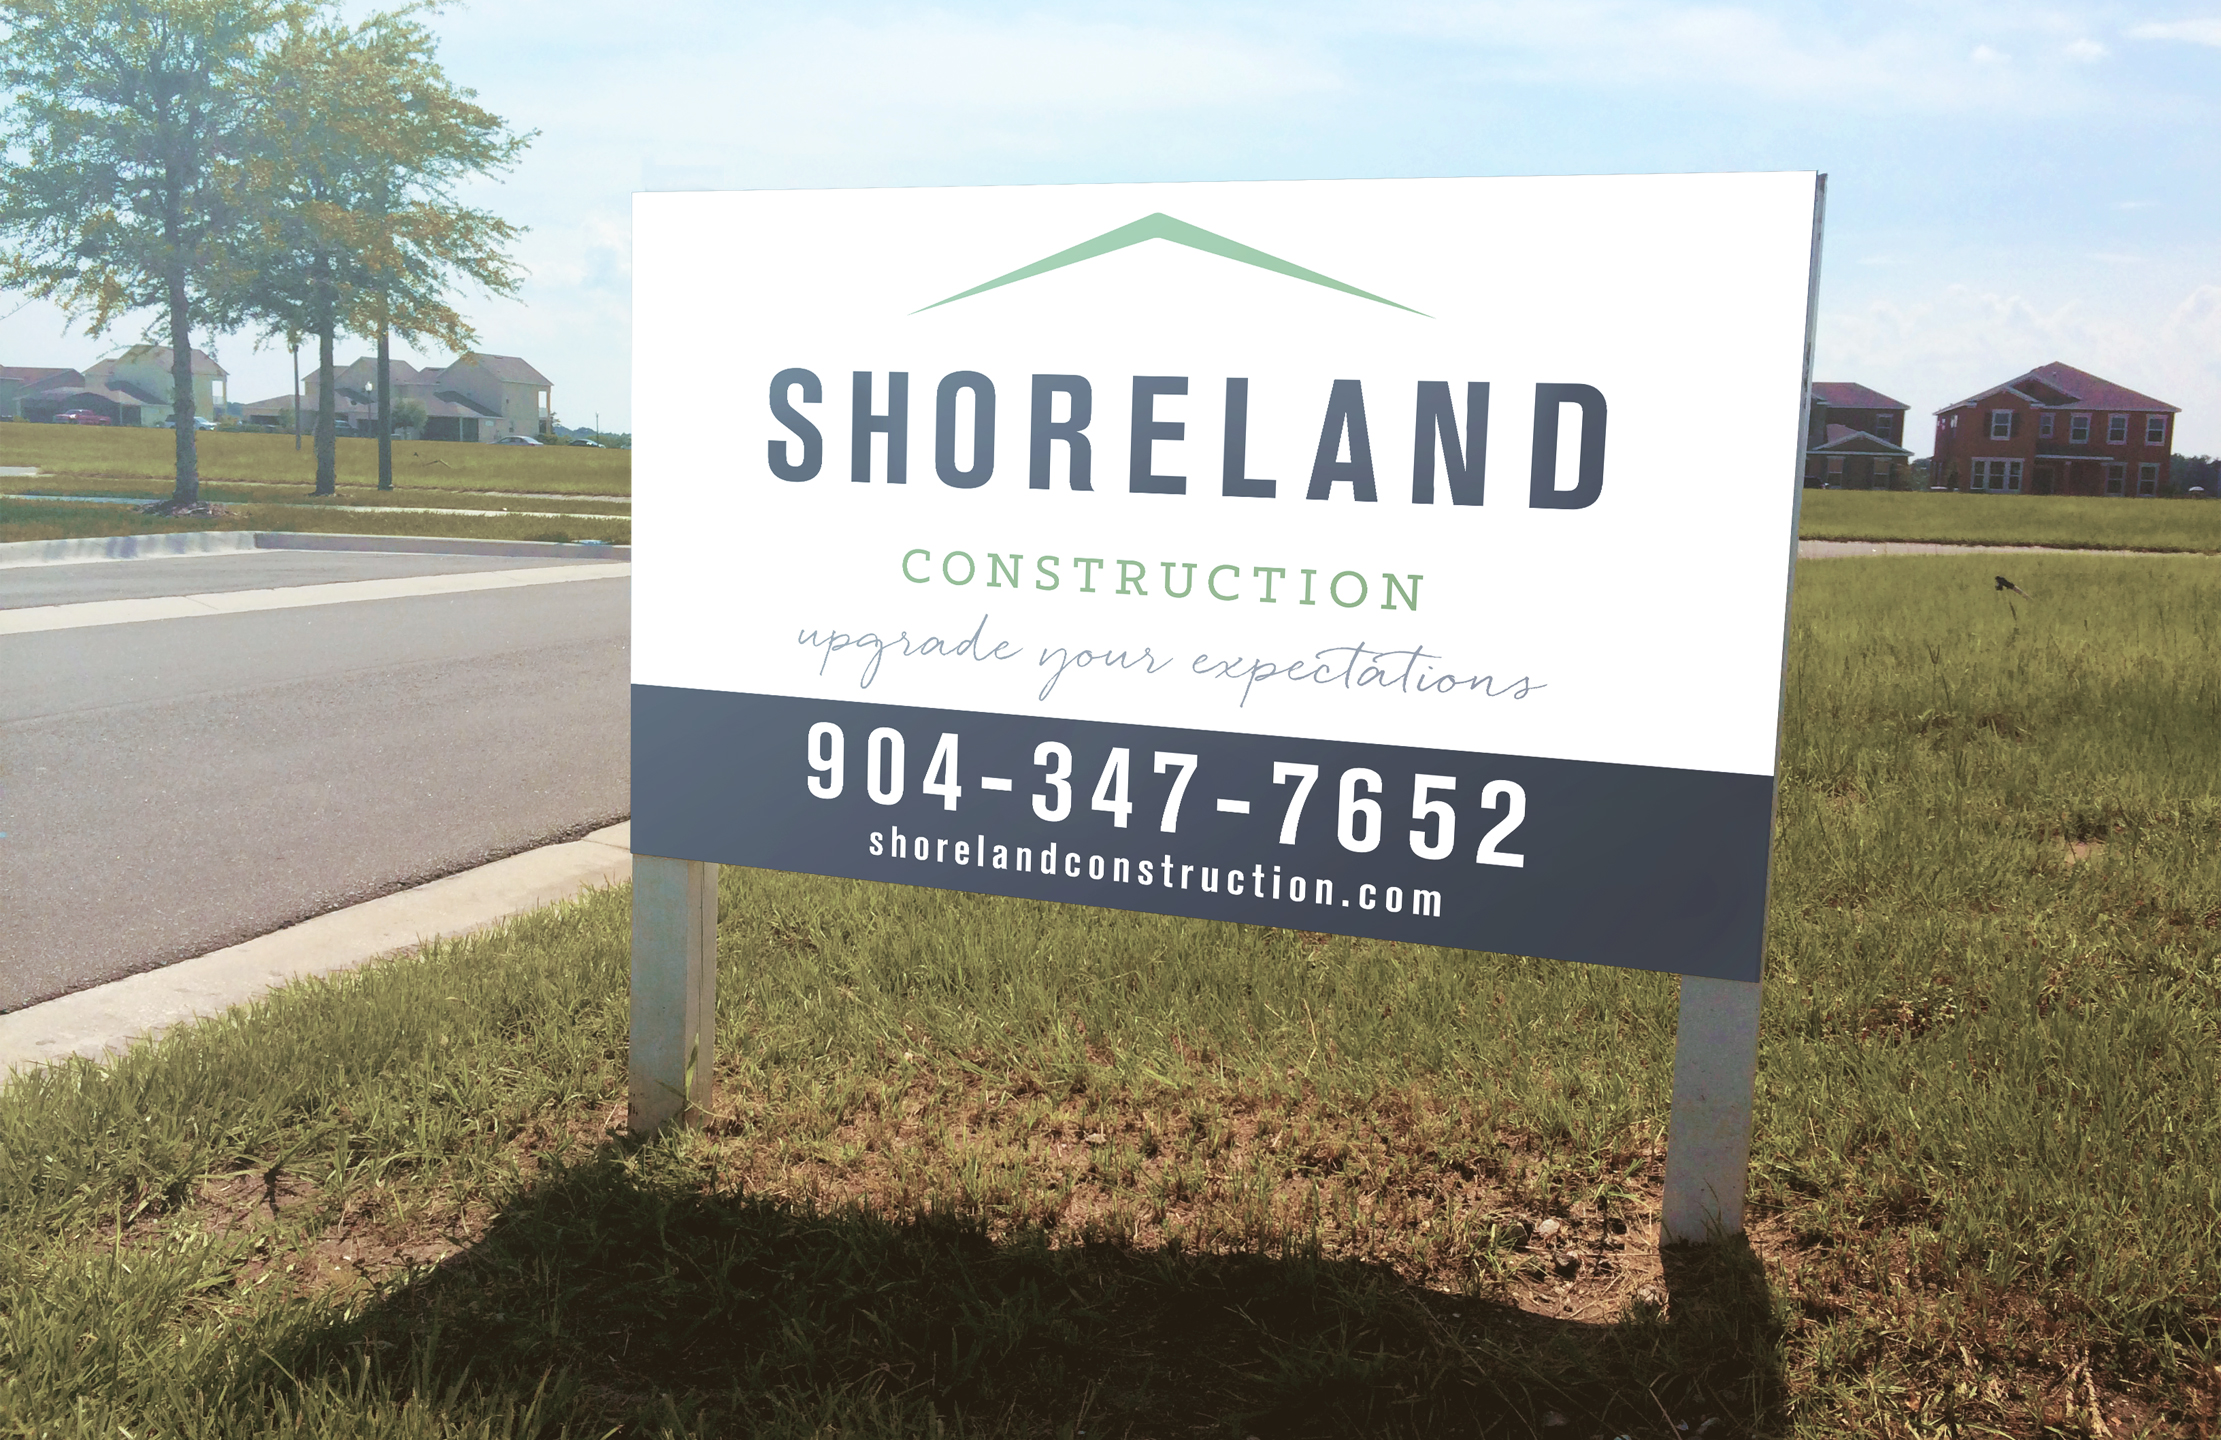 Shoreland Construction Branding Yard Sign Designed by Just Make Things